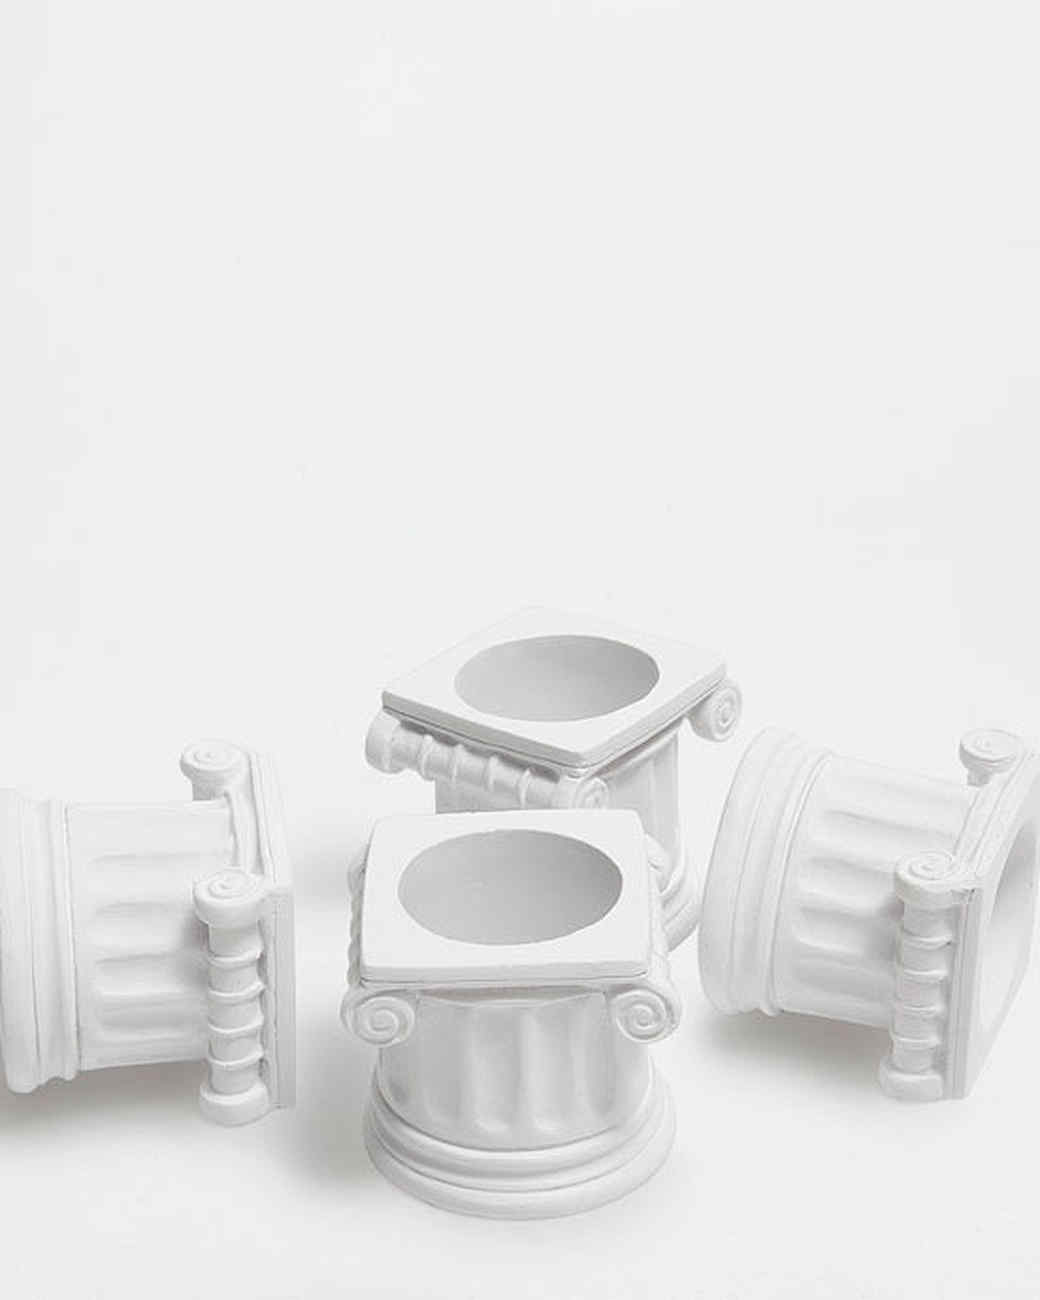 zara-capital-shaped-napkin-ring-set.jpg